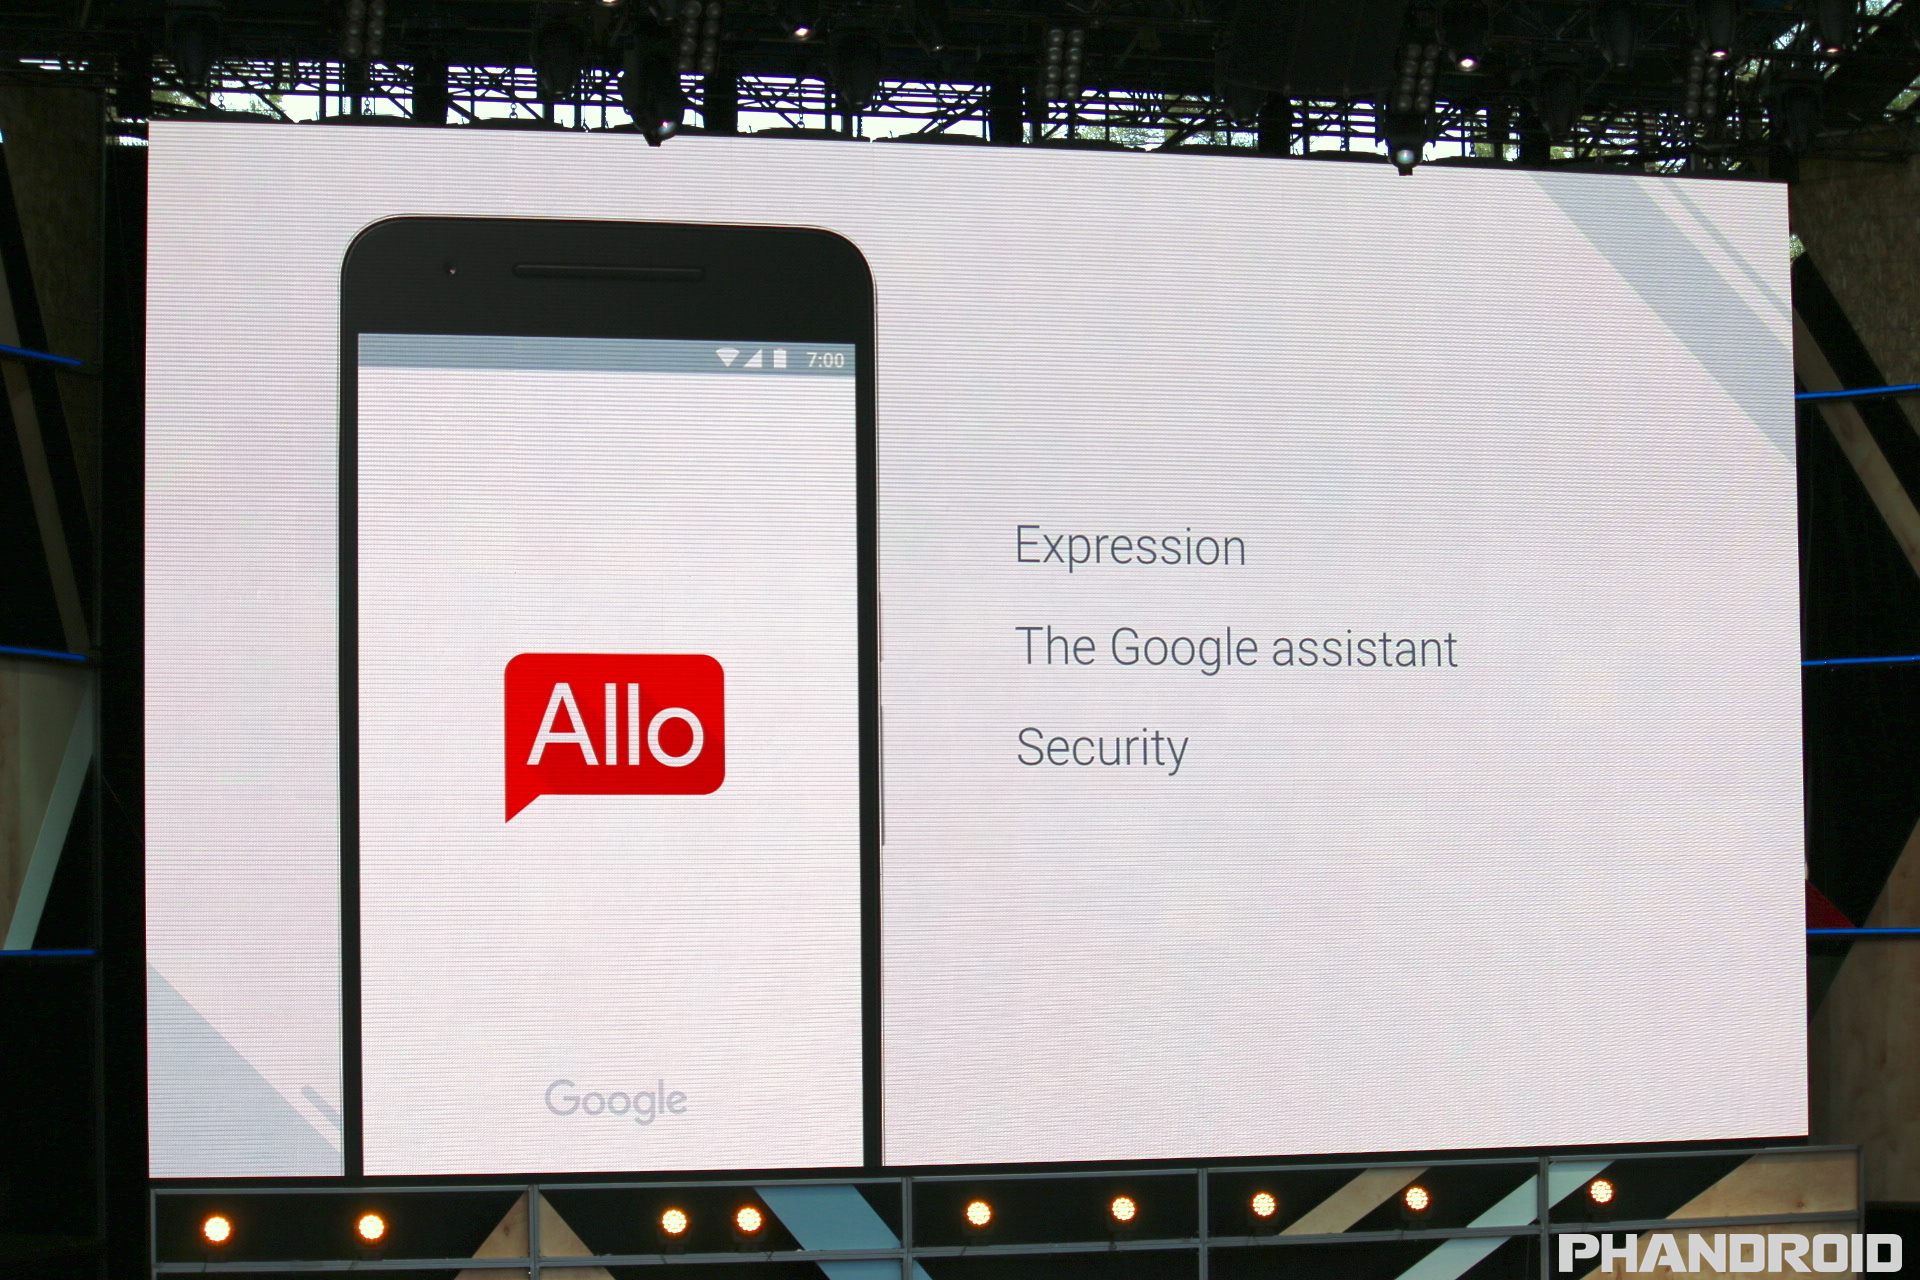 Allo app by Google